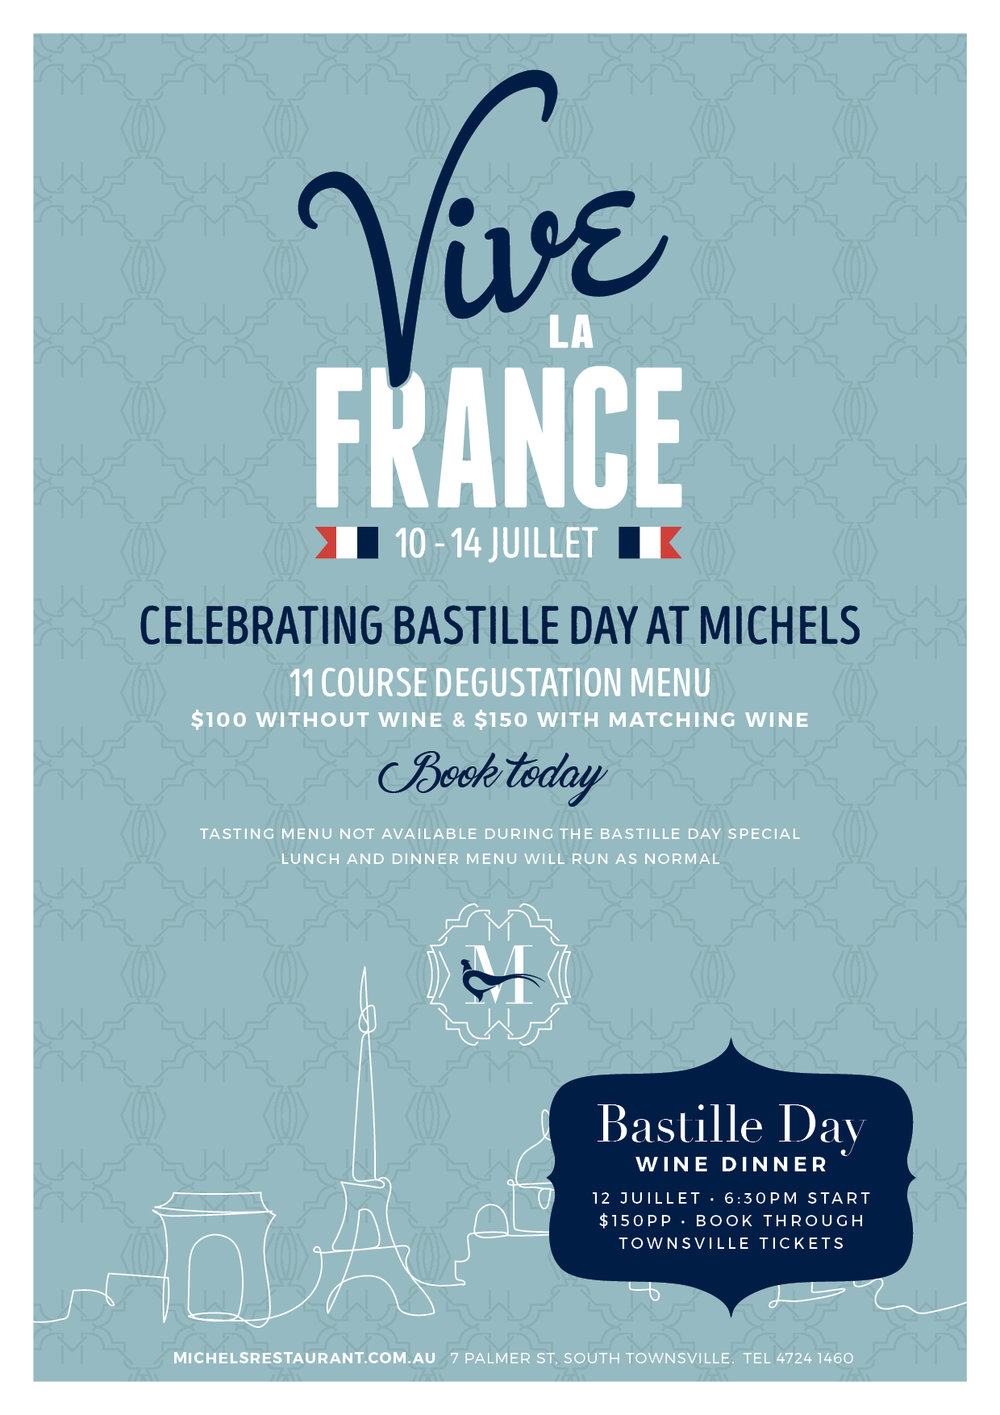 Bastille Degustation & Wine Dinner A4 no border.jpg